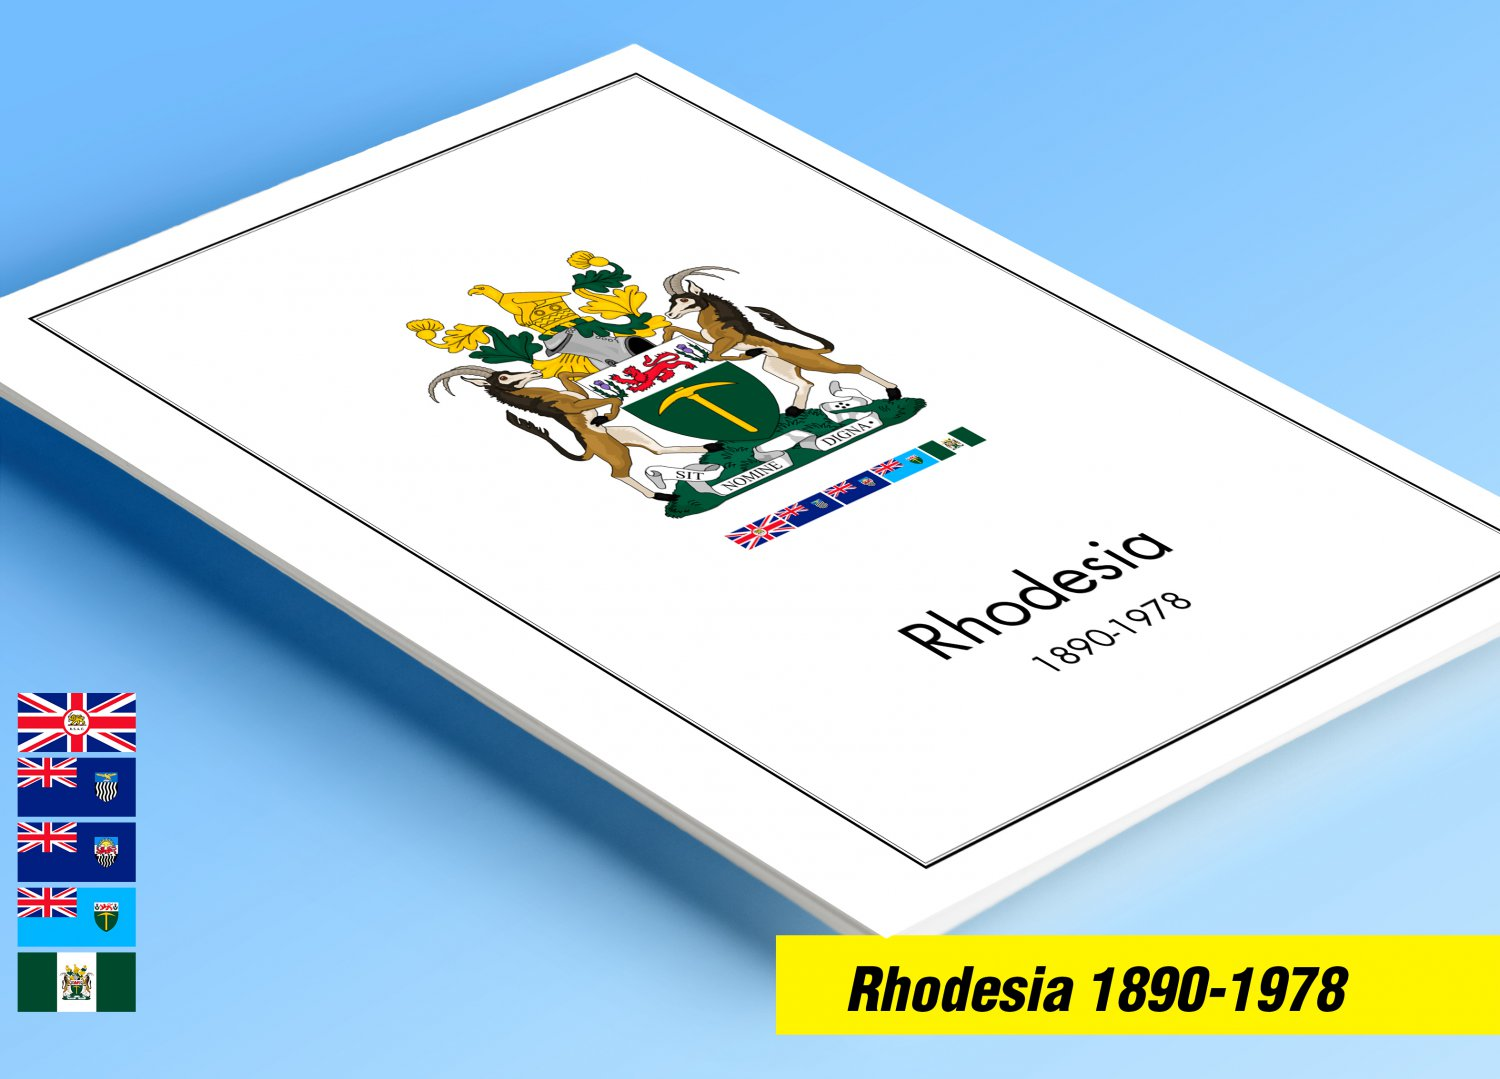 COLOR PRINTED RHODESIA 1890-1978 STAMP ALBUM PAGES (66 illustrated pages) + FREE PDF LIBRARY